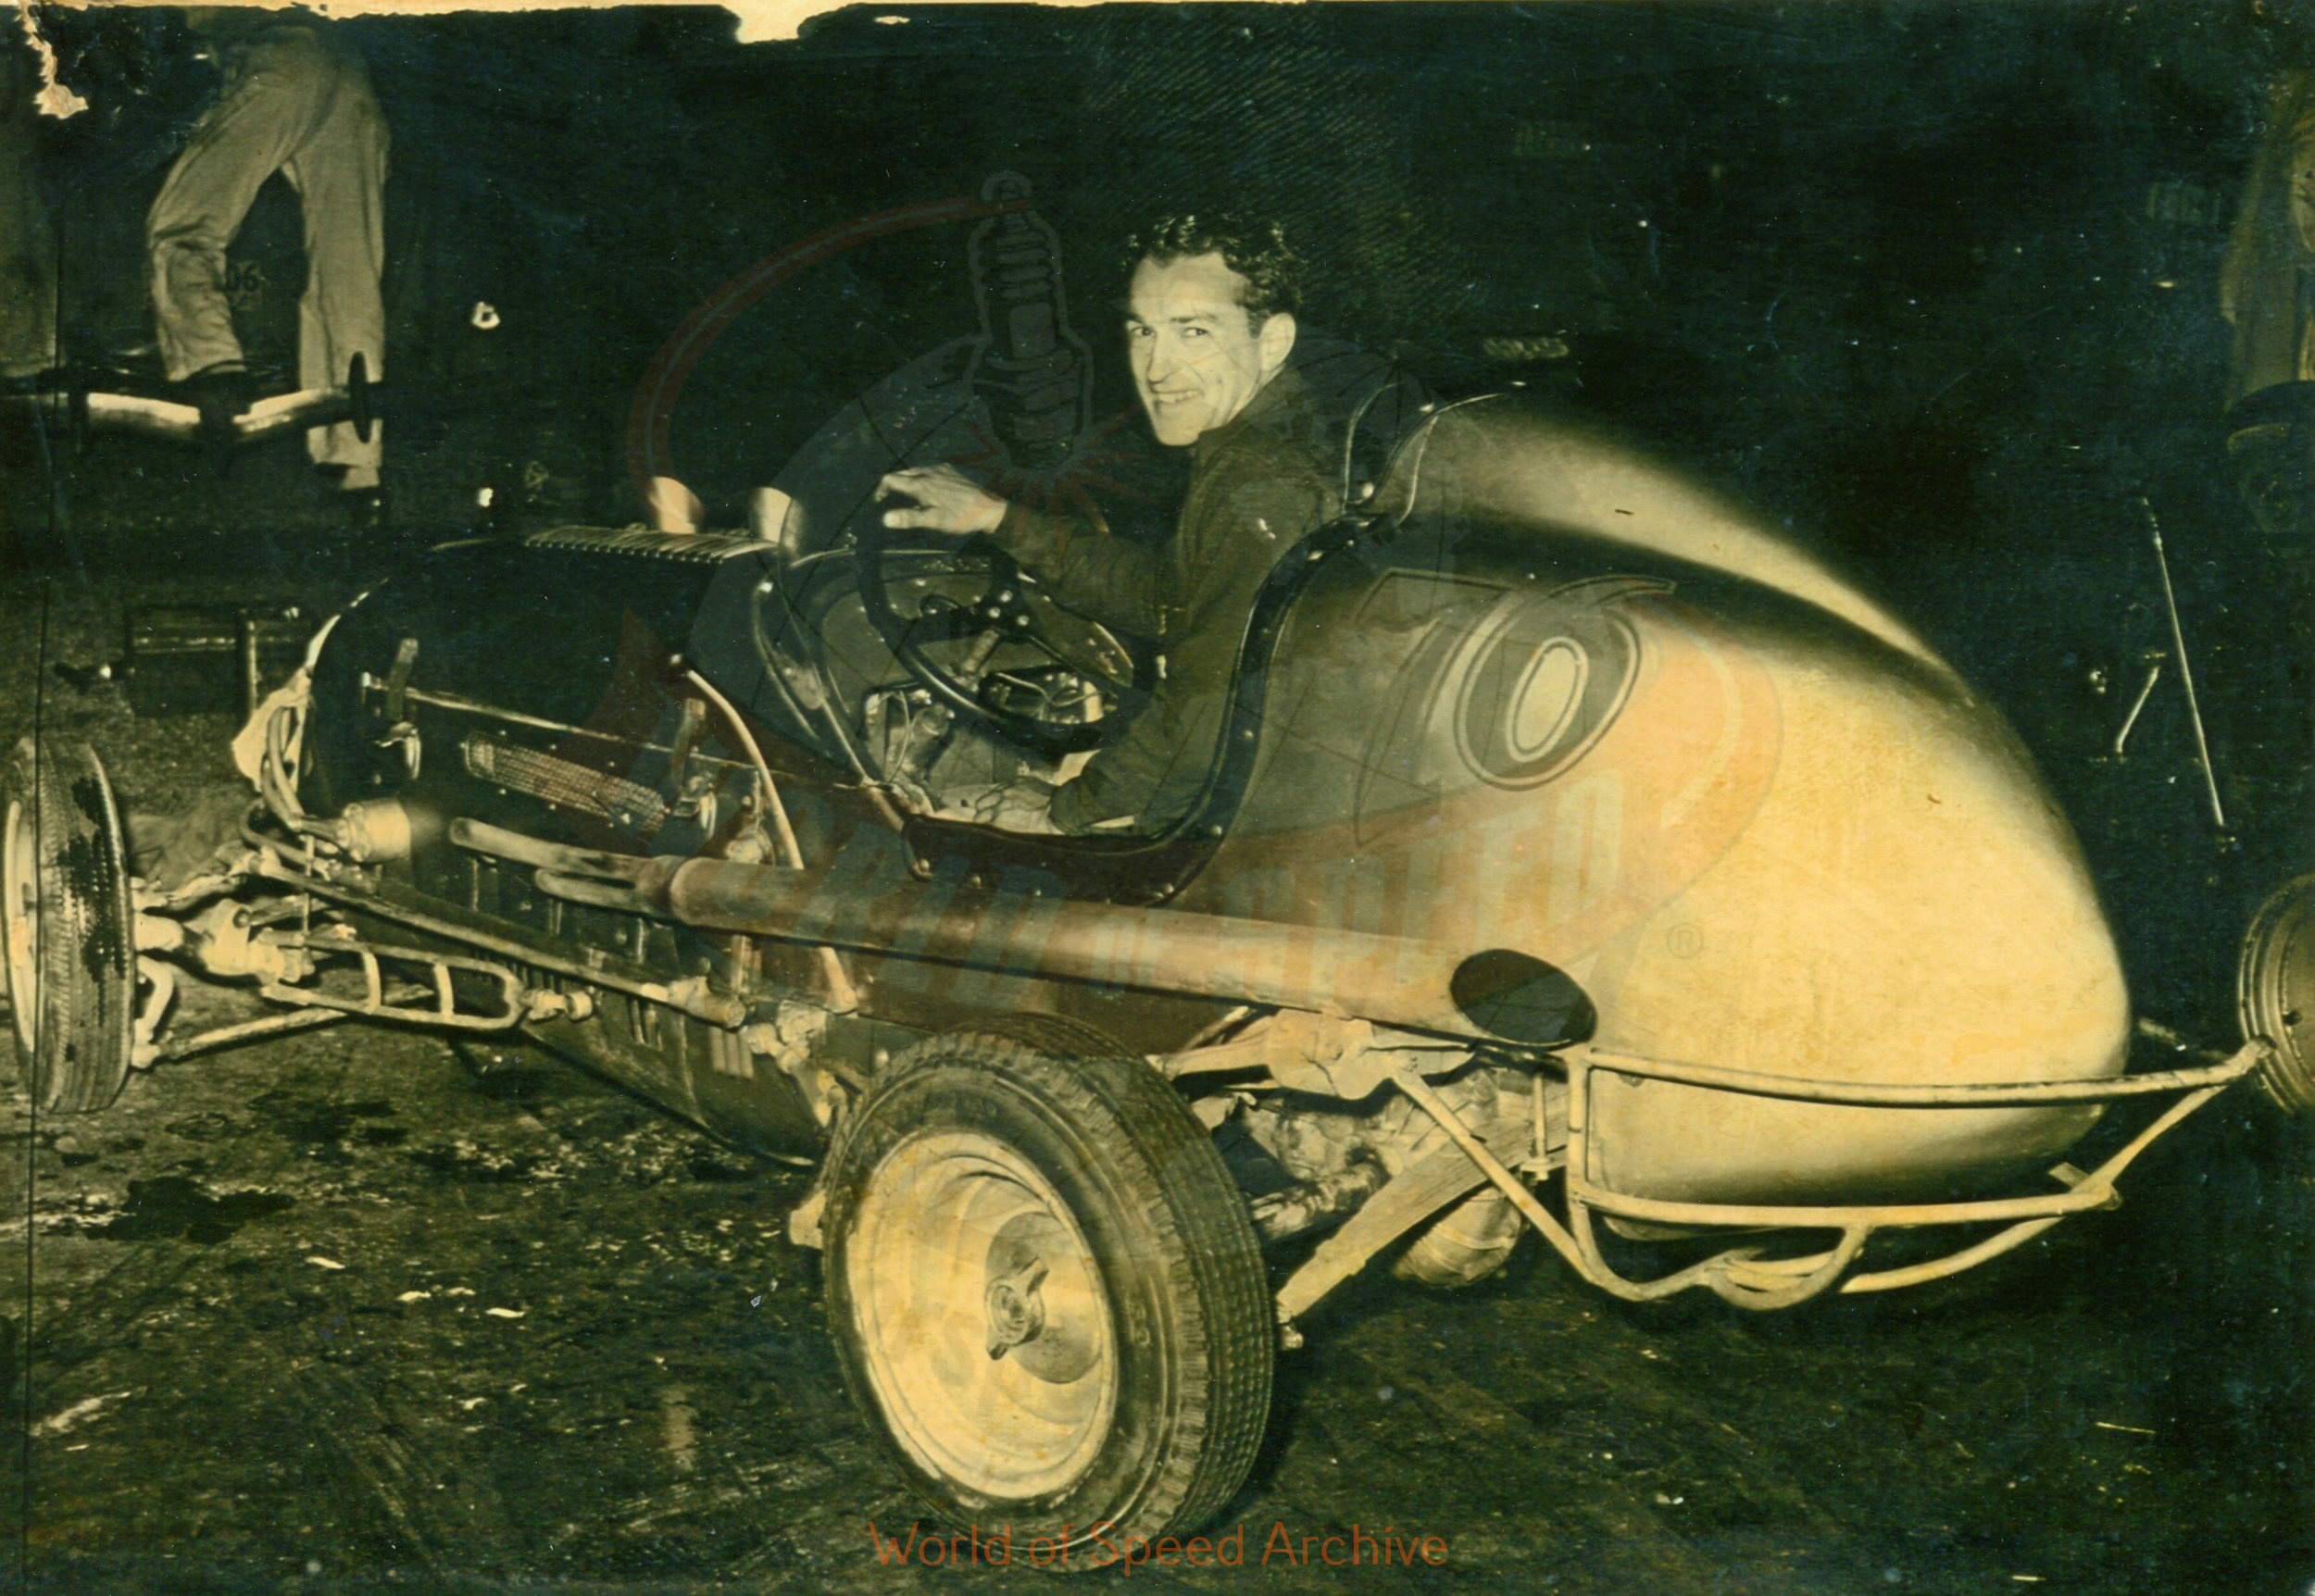 Hildick Photo Collection WOS#5072, BH003  Received submission:  This is Gordy Livingston and the car was owned by Col. Tex Roberts.